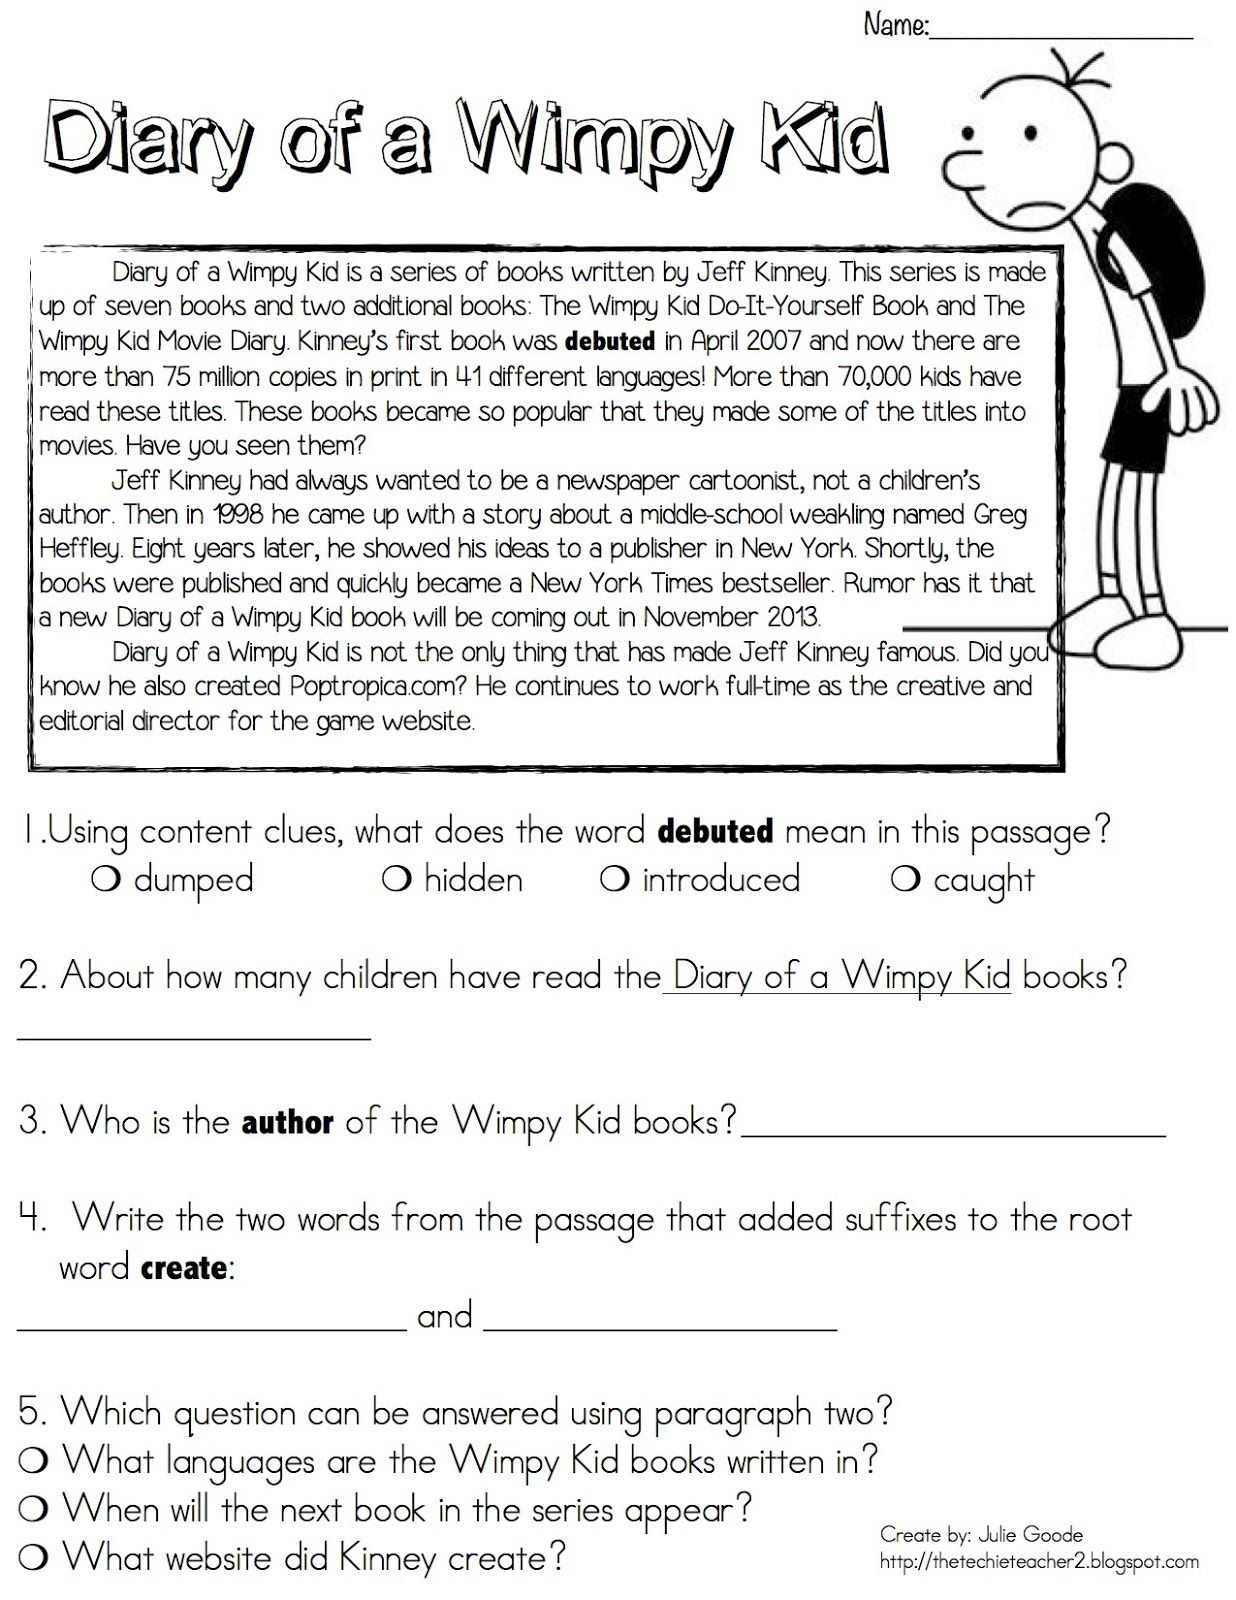 worksheet Reading Comprehension 5th Grade Worksheets diary of a wimpy kid reading passage freebie workshop freebie